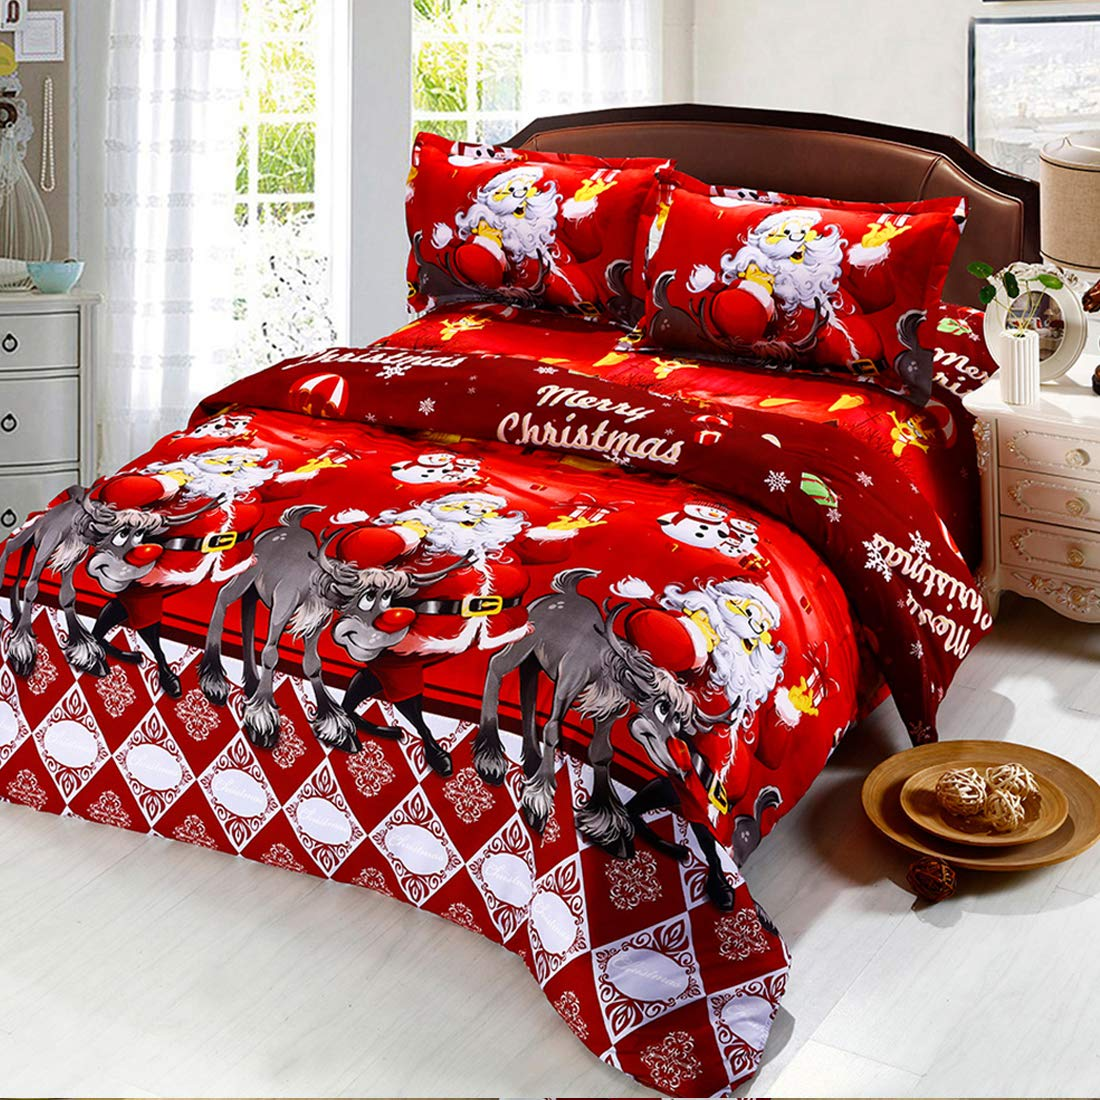 Oliven 4 Pieces 3D Christmas Bedding Set Twin Size Cartoon Santa Claus Duvet Cover Flat Sheet Standard Pillowcases-Red,Christmas Home Decor